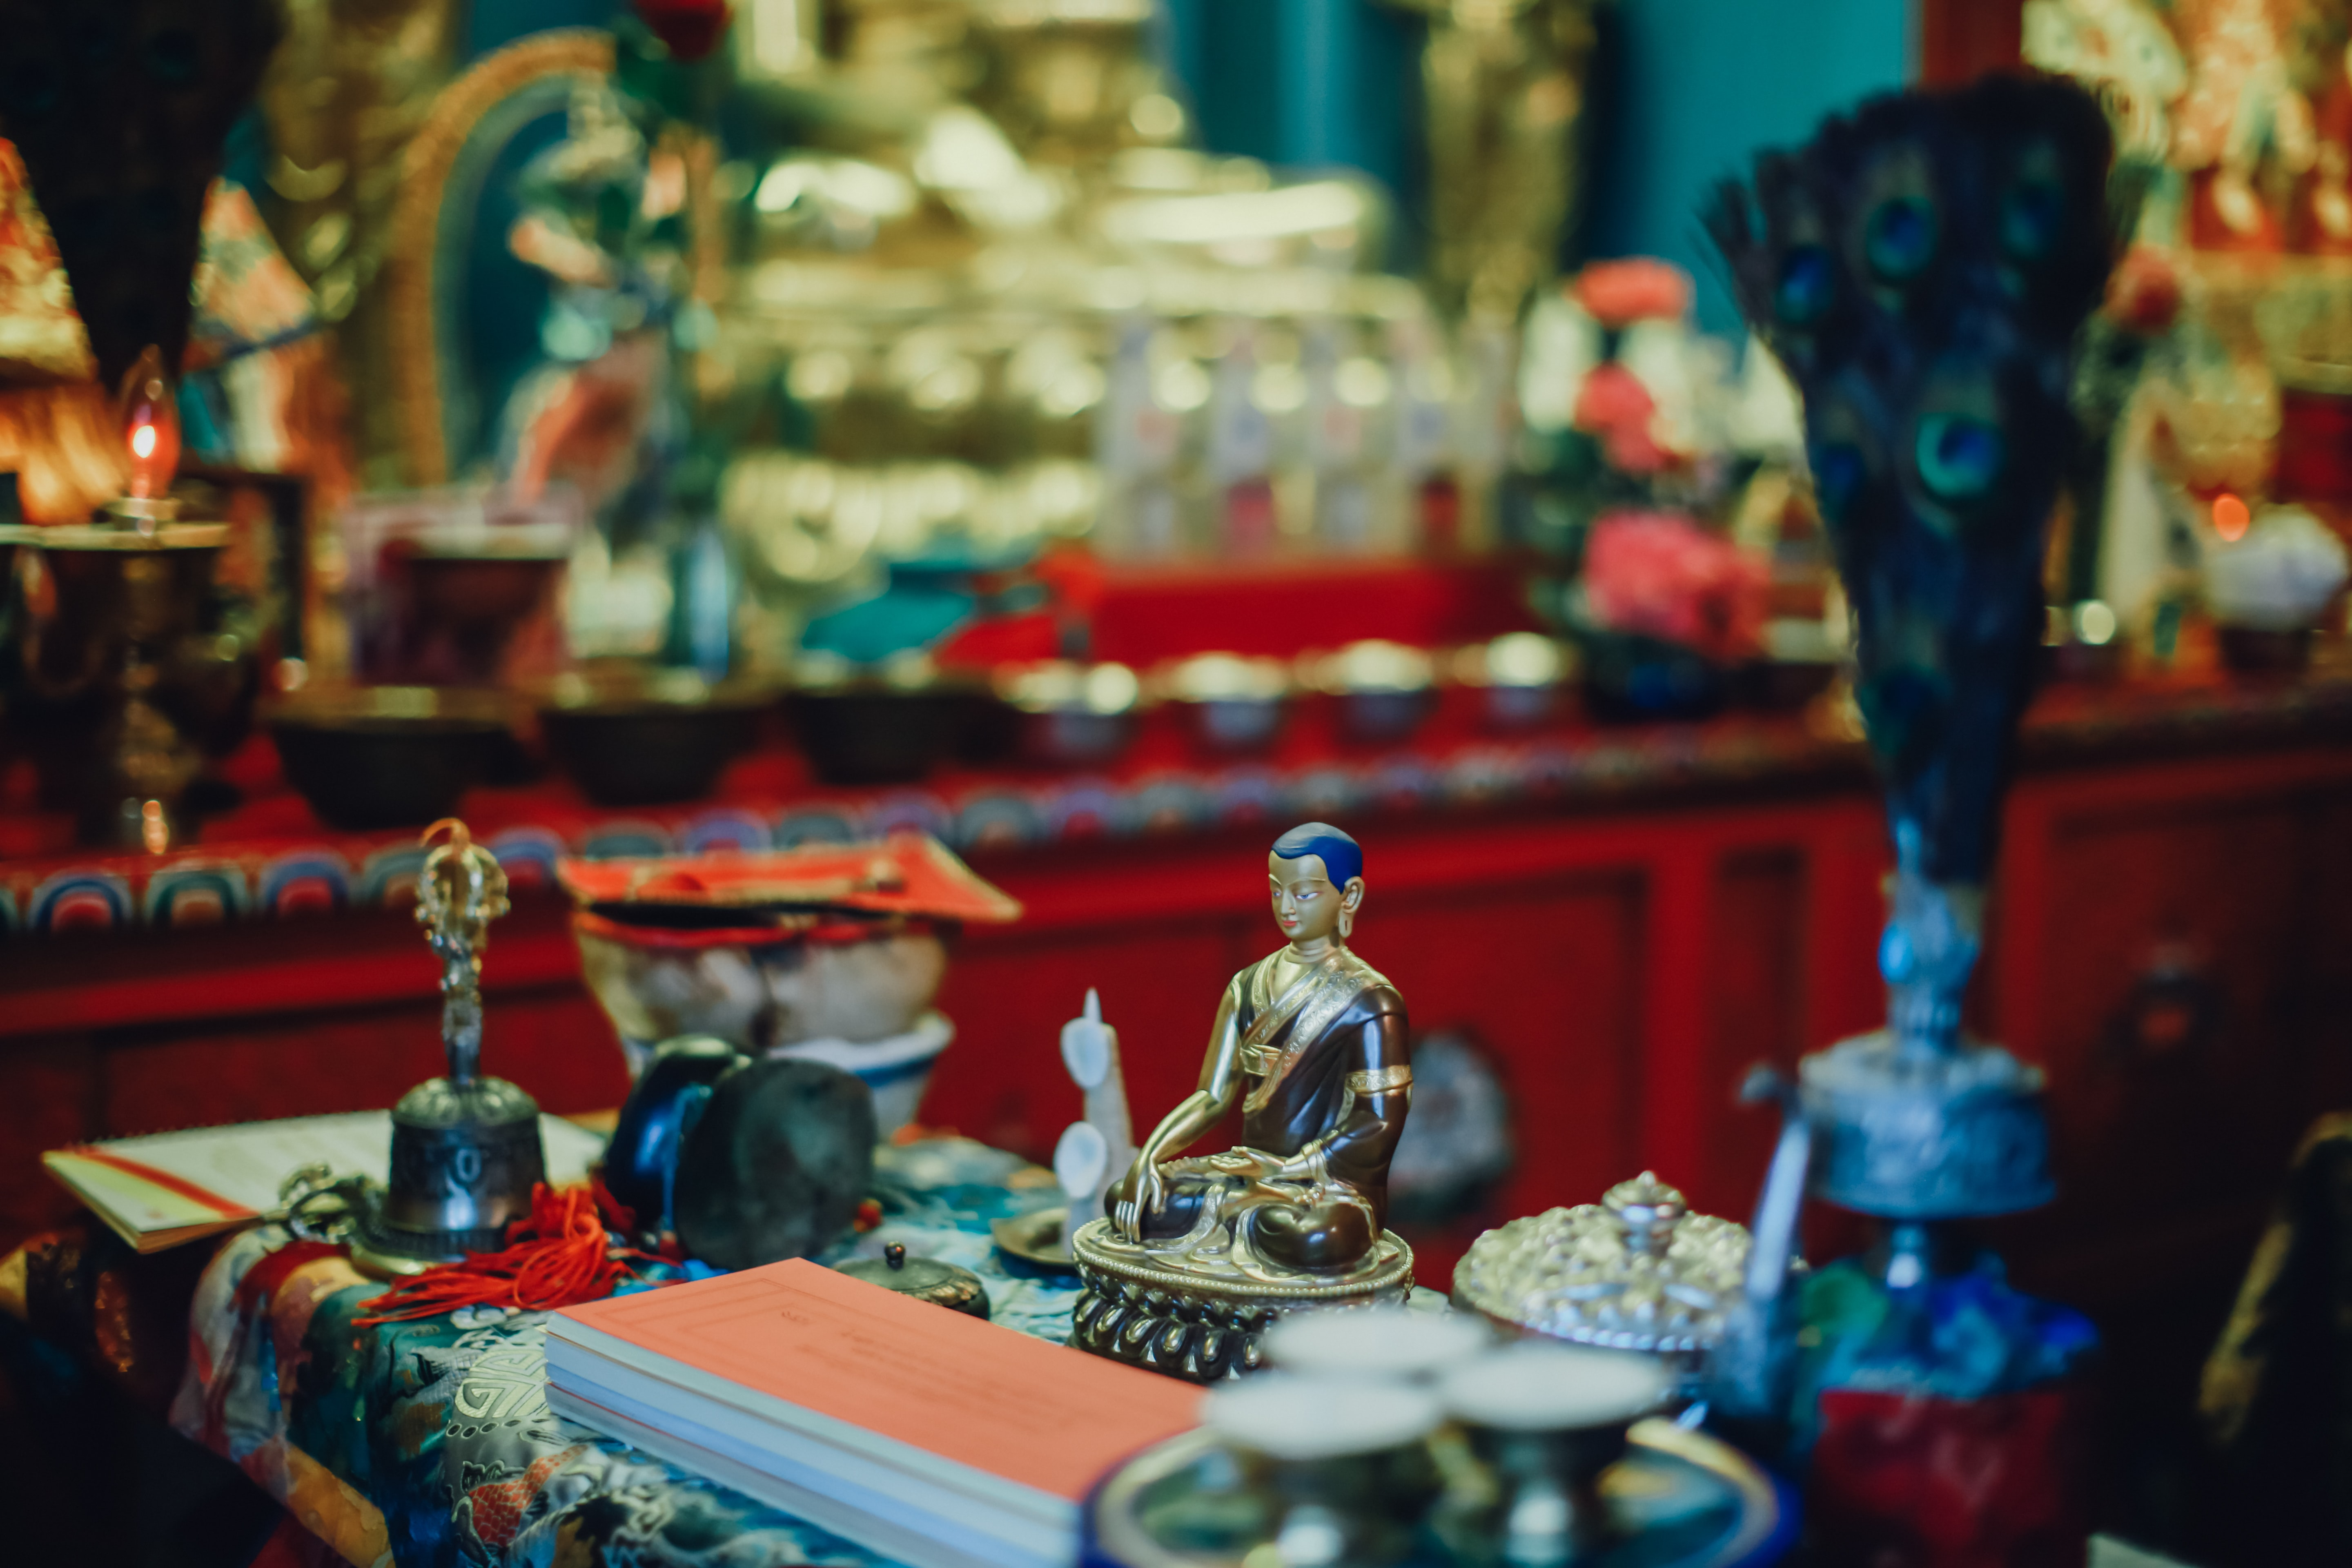 Religious statues and offerings inside a temple